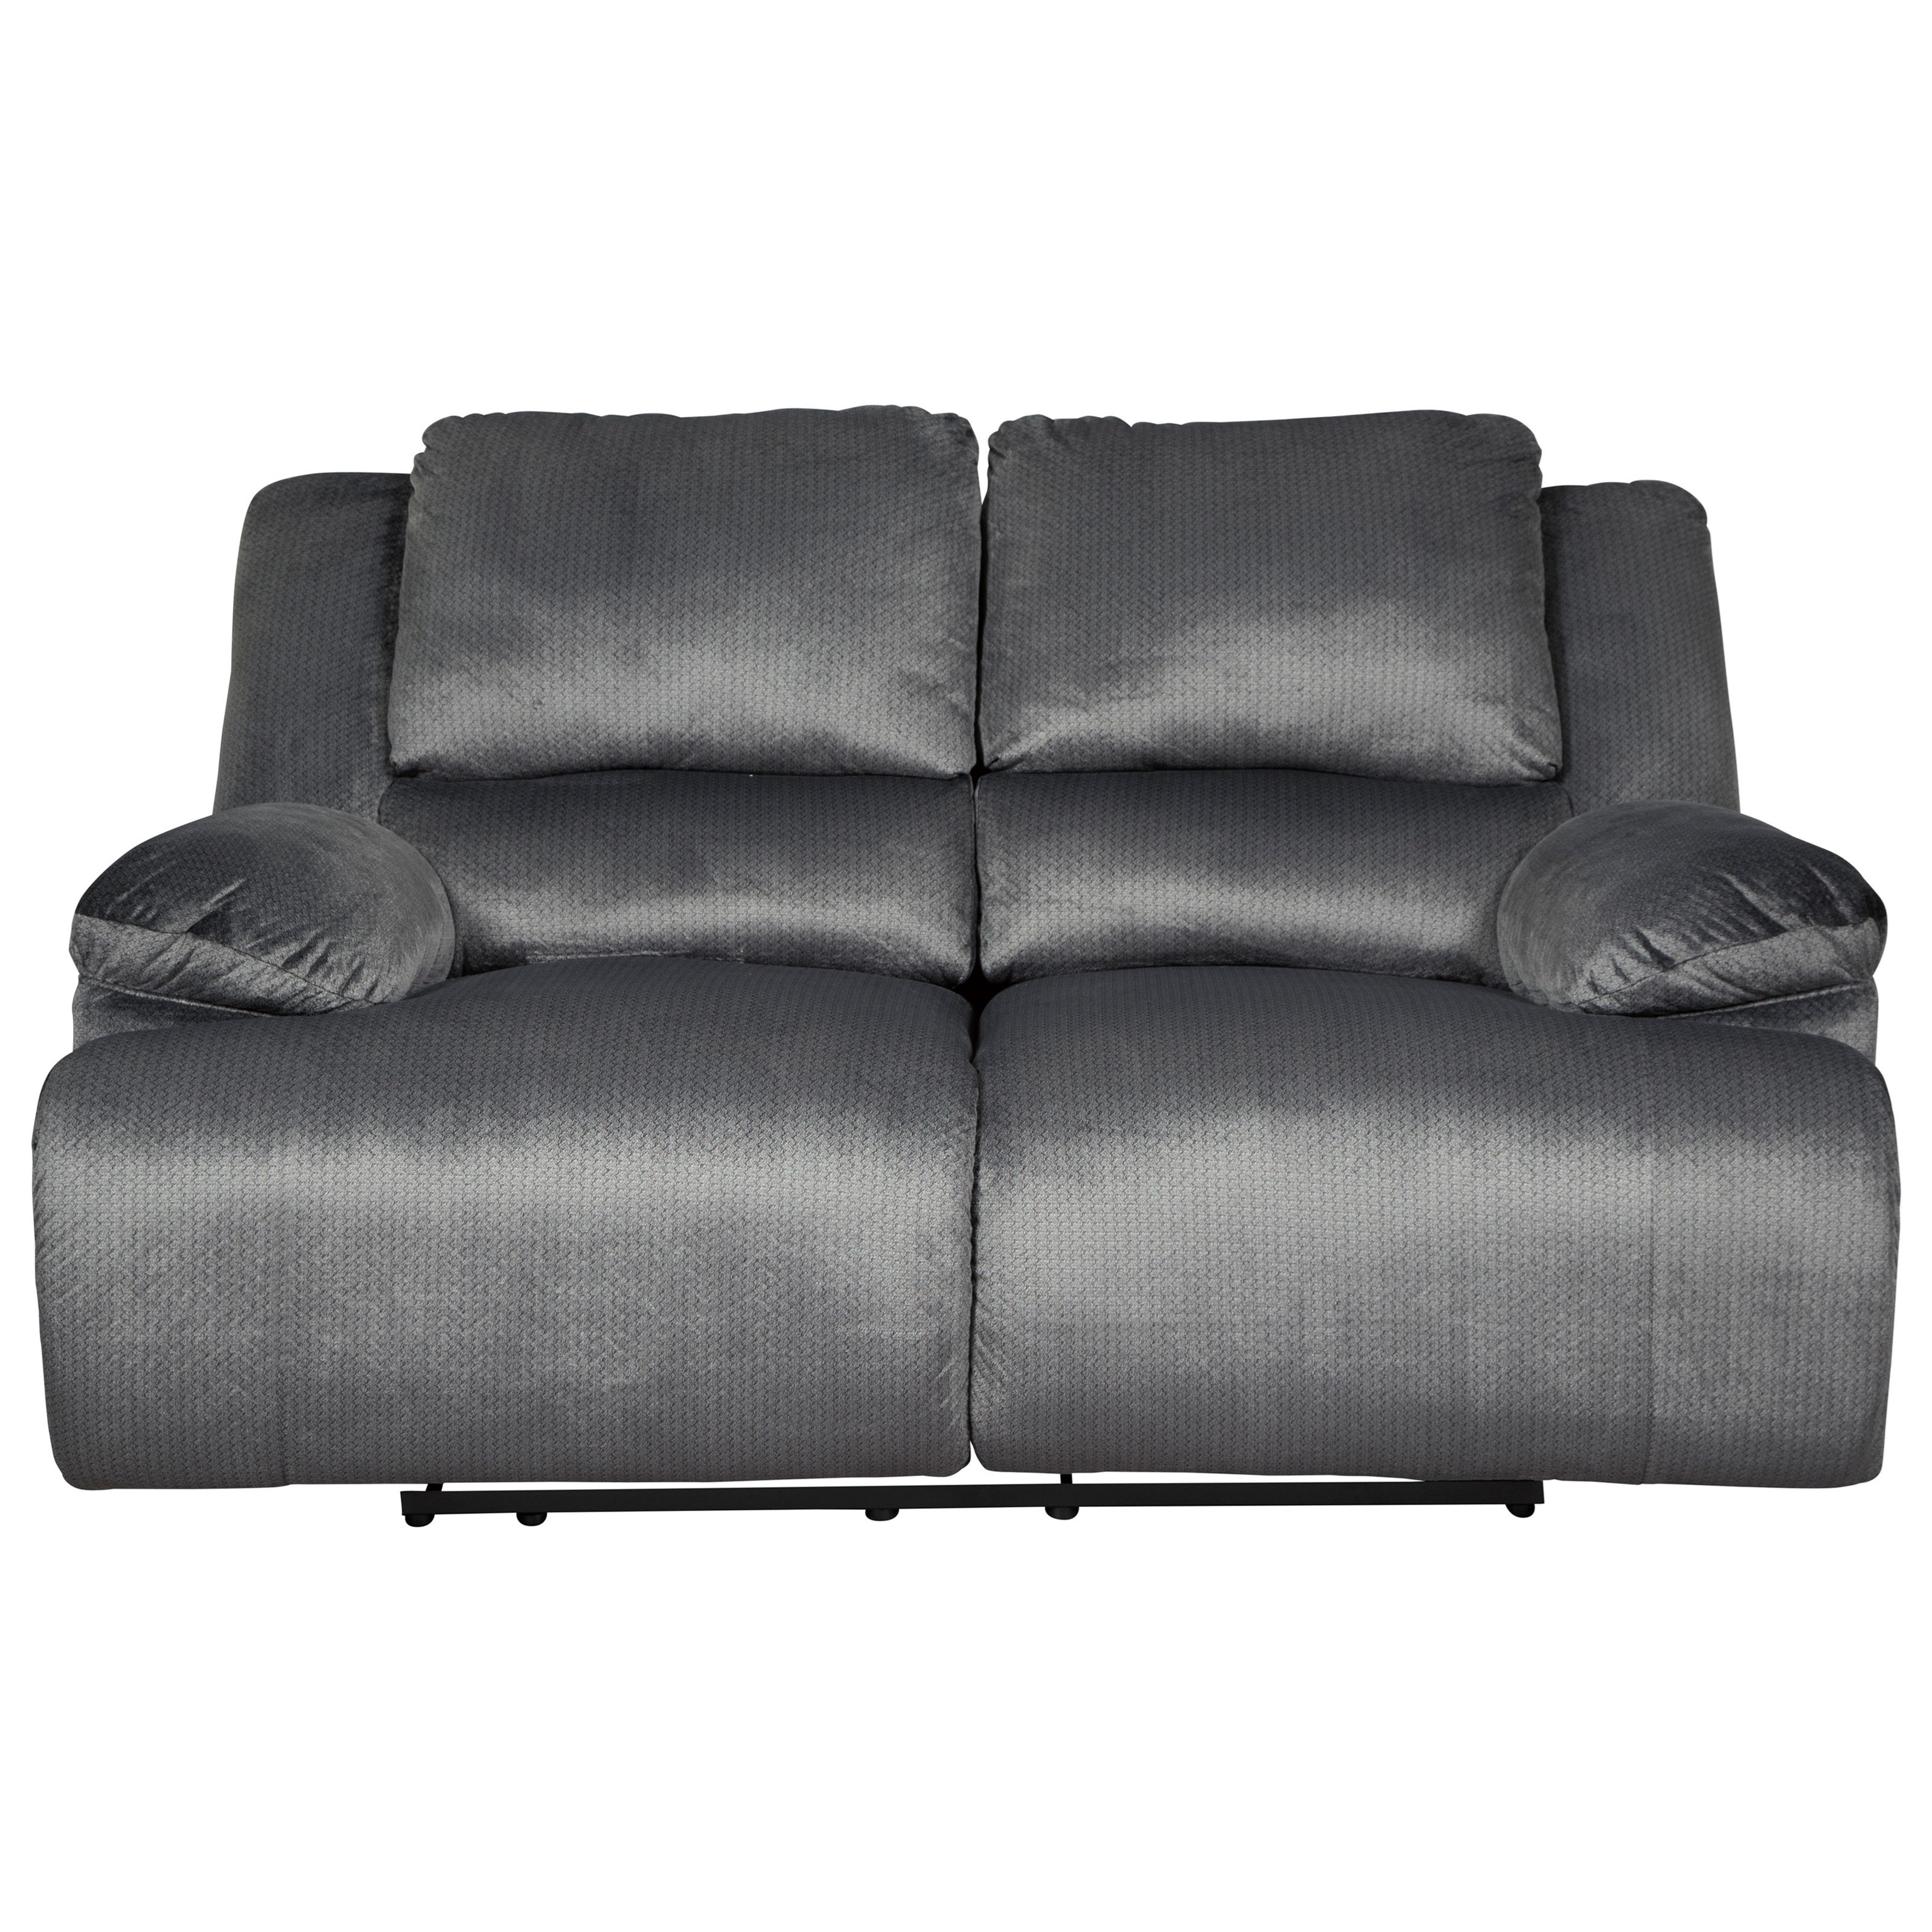 Clonmel Reclining Loveseat by Signature Design by Ashley at Standard Furniture